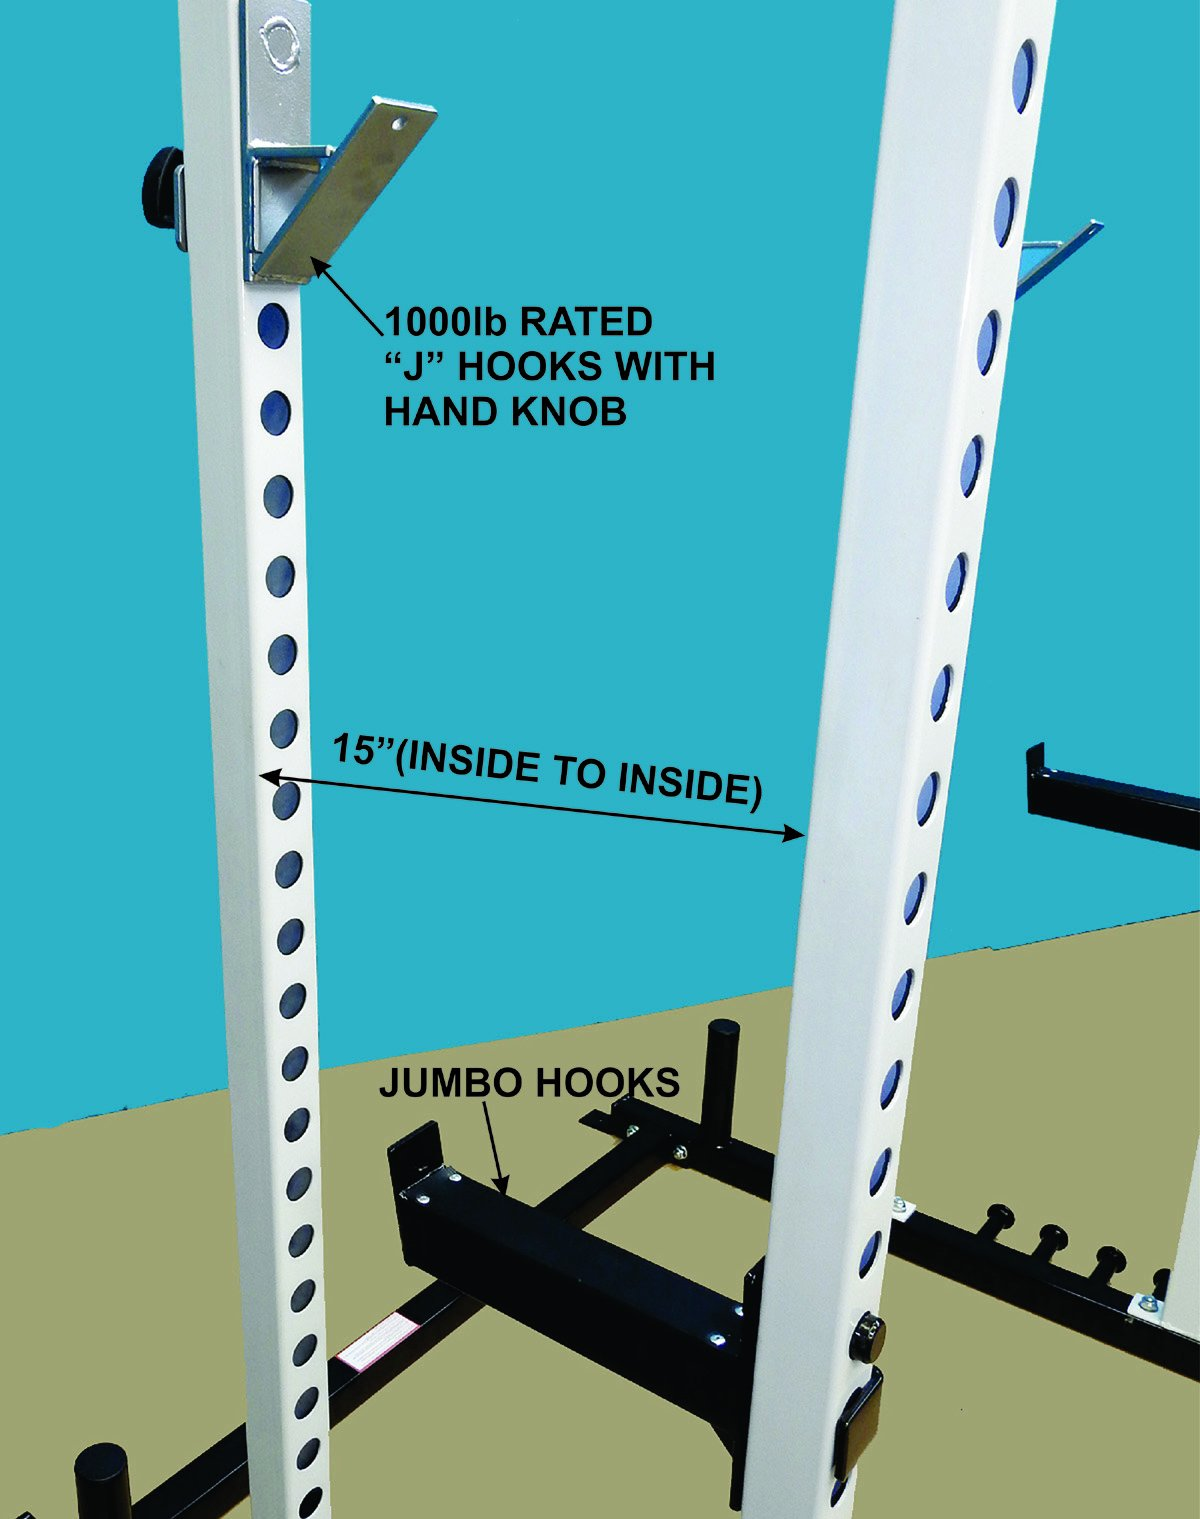 POWER SQUAT CAGE with (2) Pull Up Bars and (4) Band holders welded to bases. Comes with 1000 lb rated ''J'' Hooks and HD Jumbo Hooks with Rubber Lining